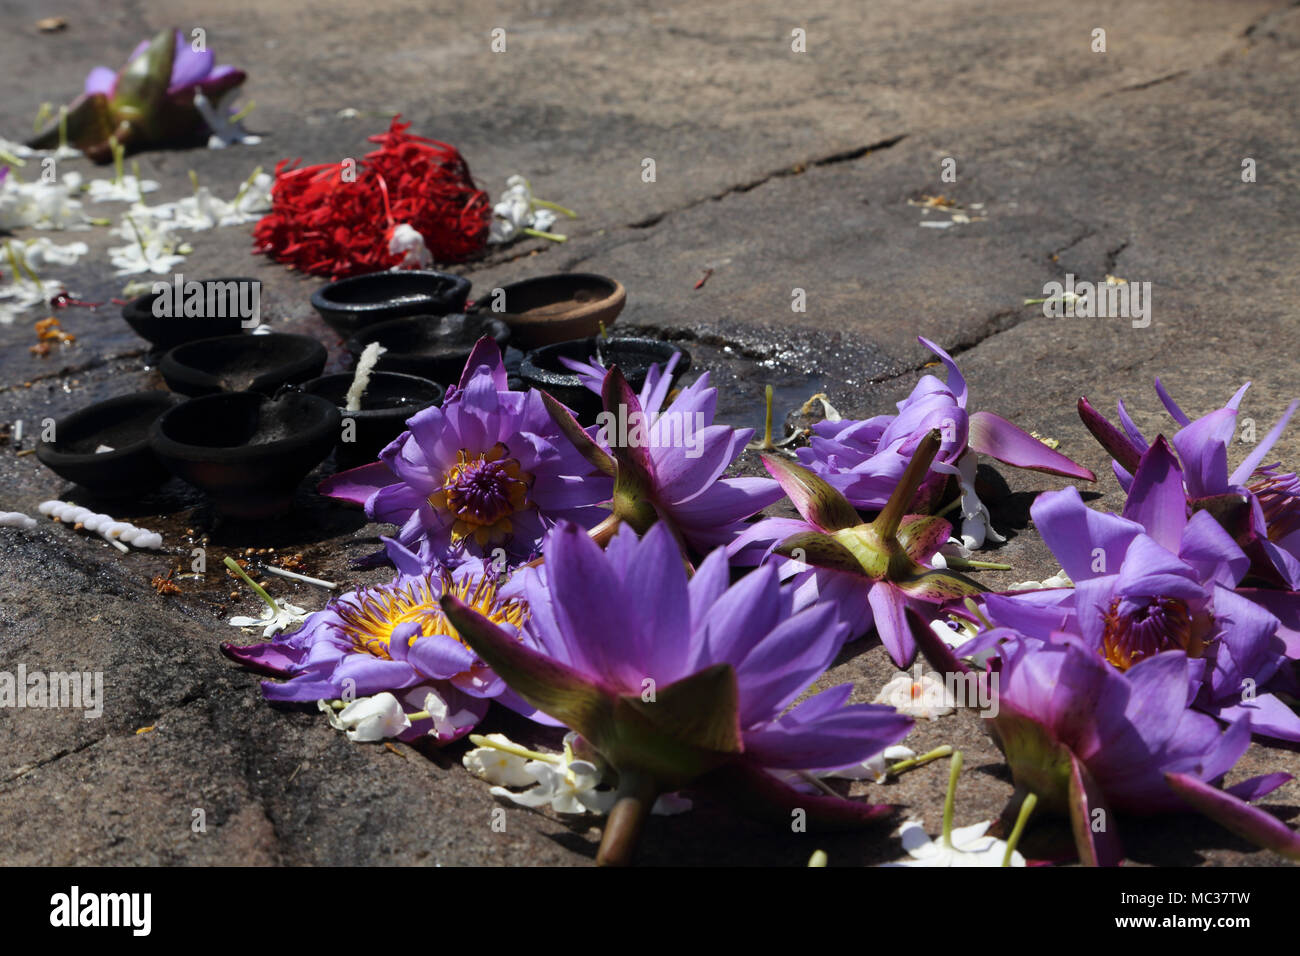 Anuradhapura North Central Province Sri Lanka Jetavanarama Dagoba Lotus Flowers and Butter Lamps - Stock Image